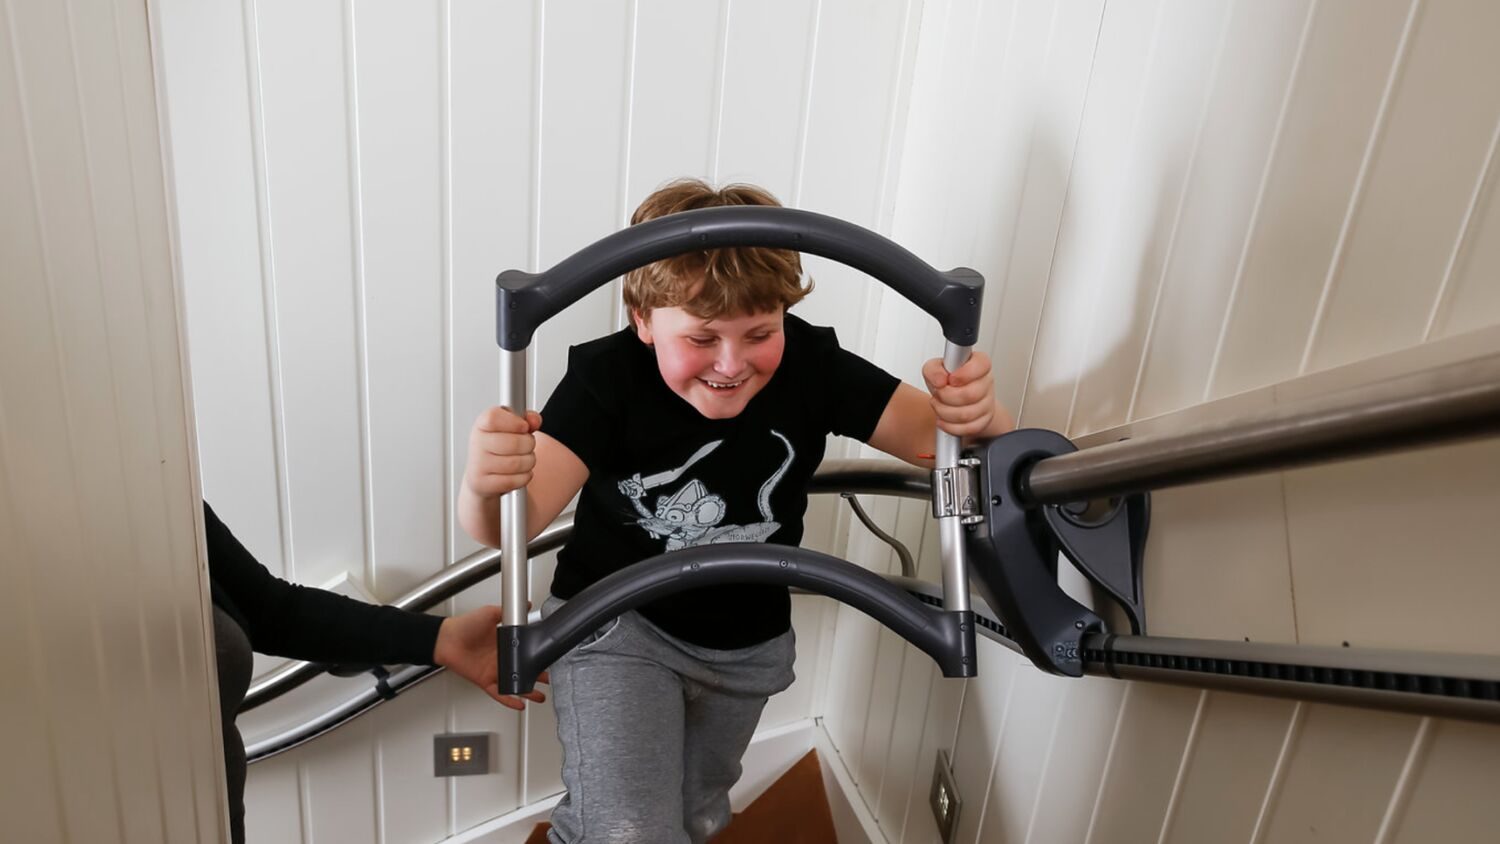 The stairwalker AssiStep is a stair climbing aid for children